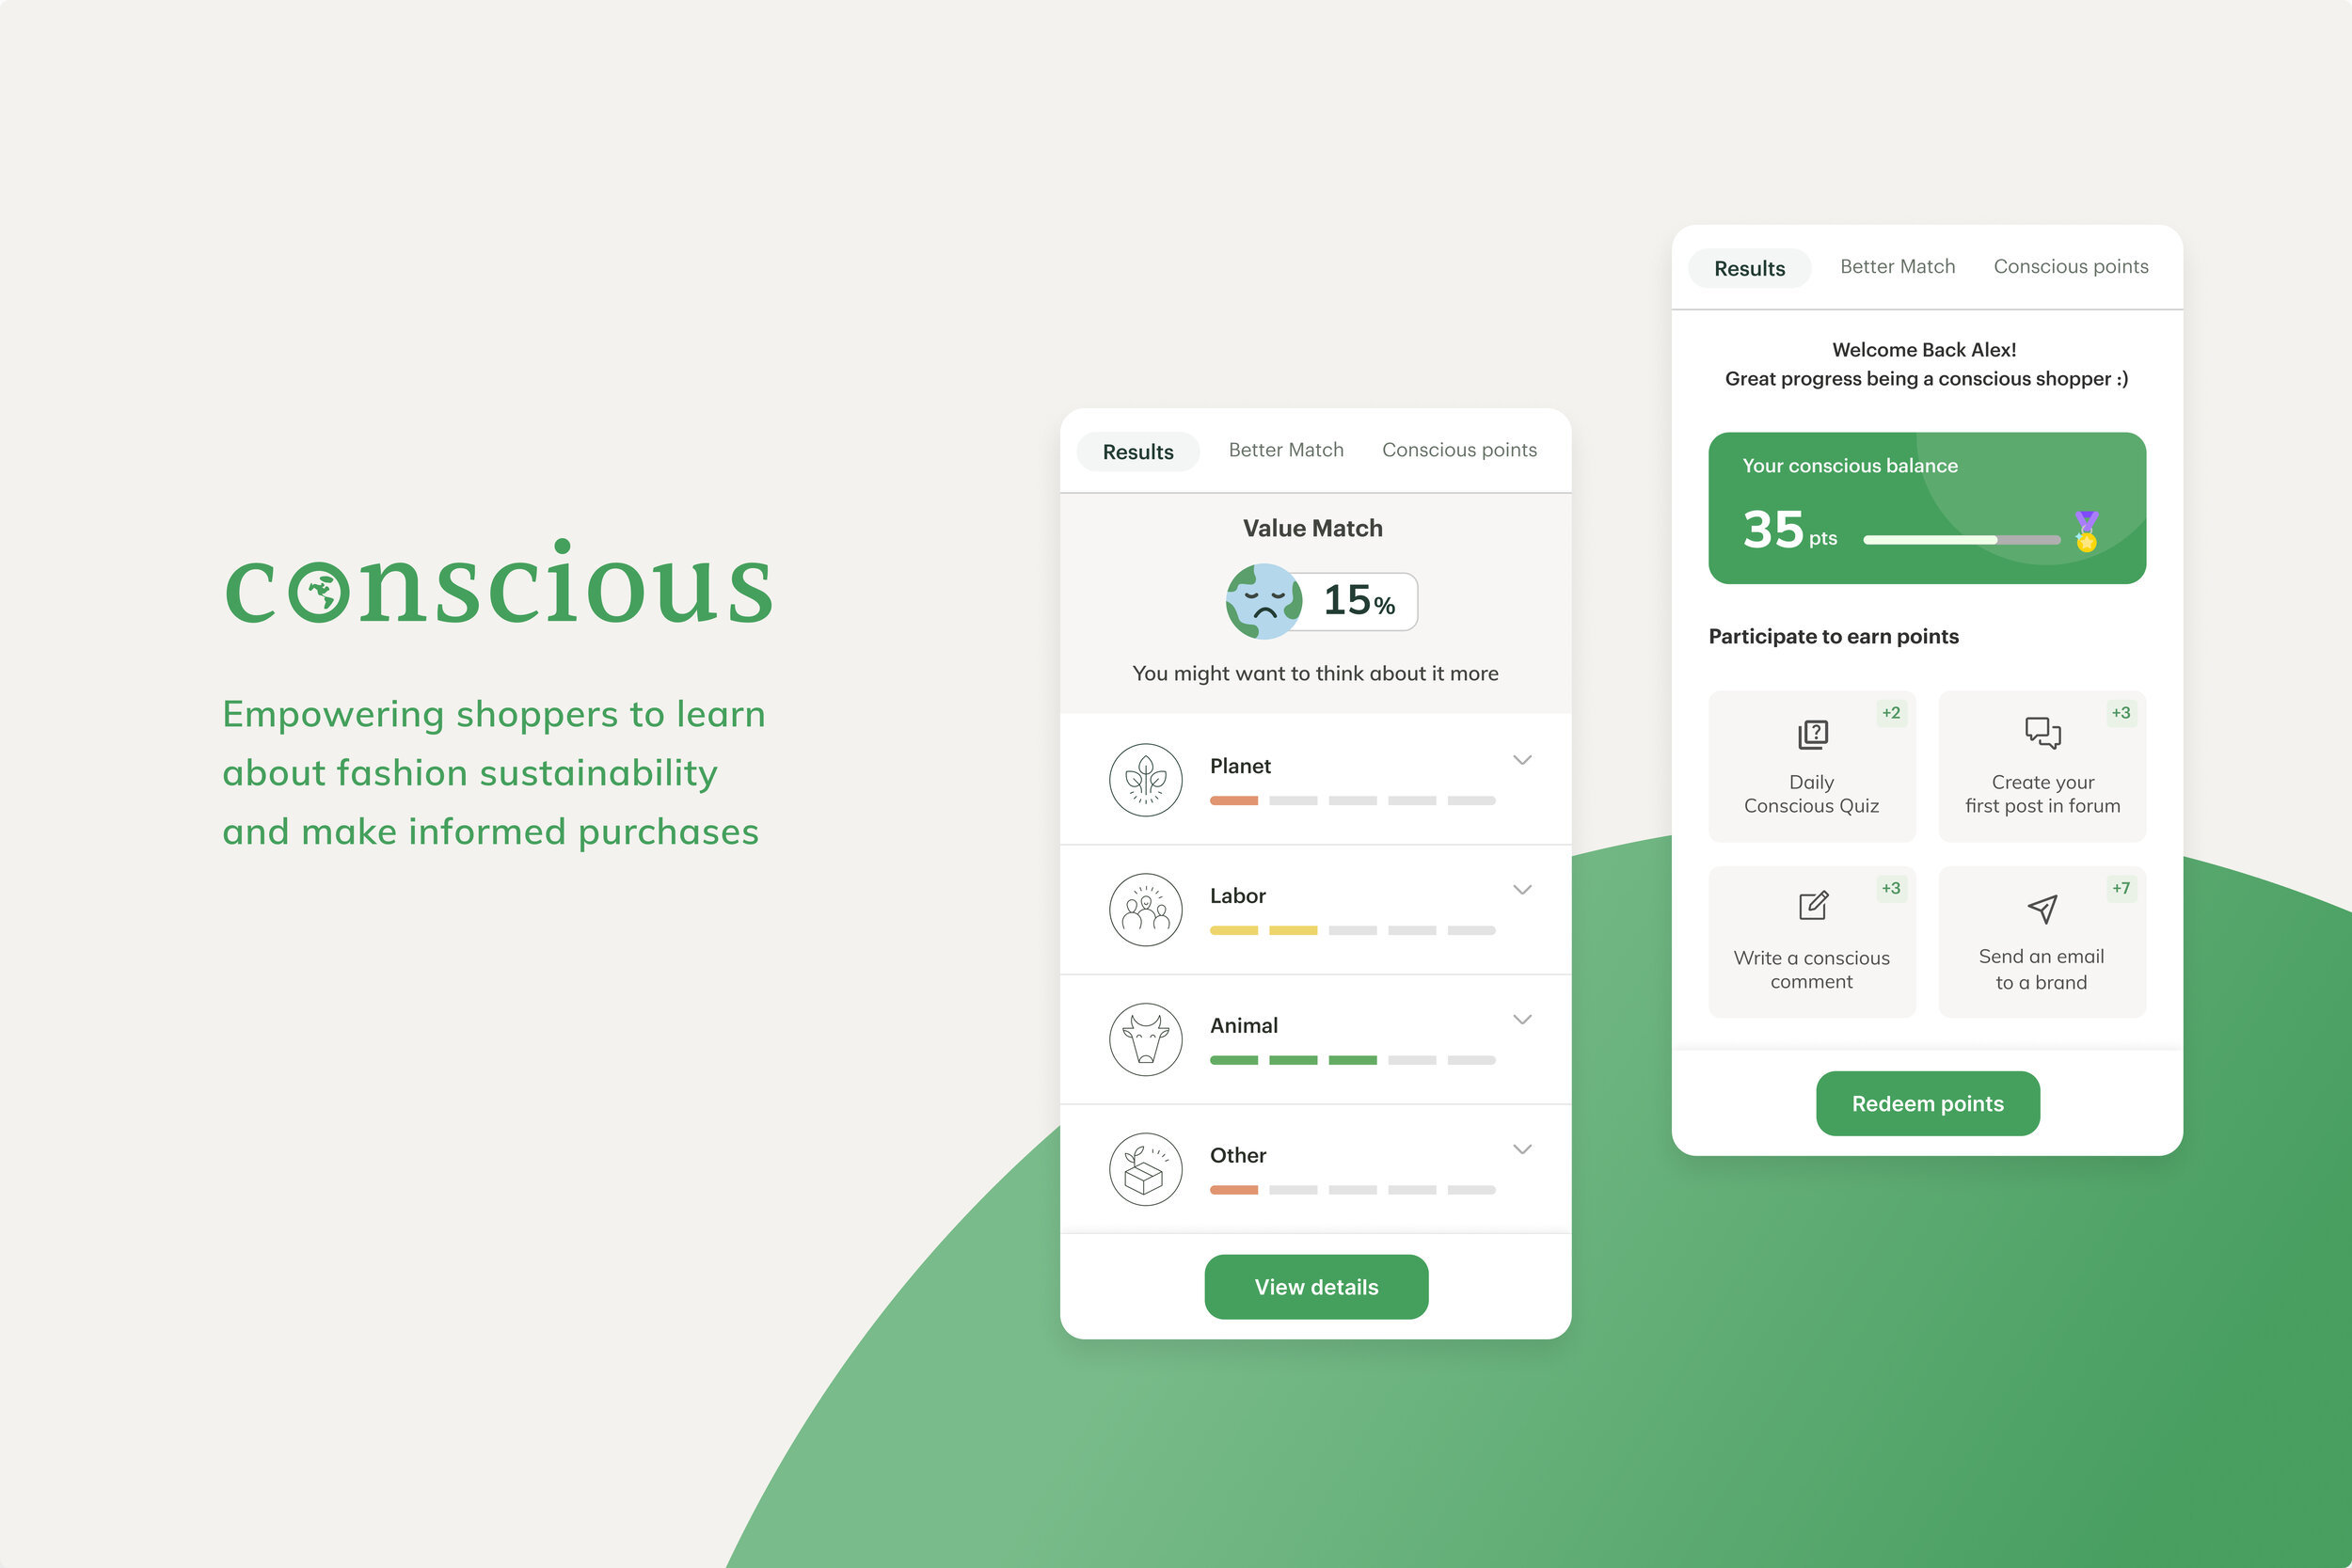 conscious A plugin that empowers shoppers to learn about fashion sustainability and make informed purchases.